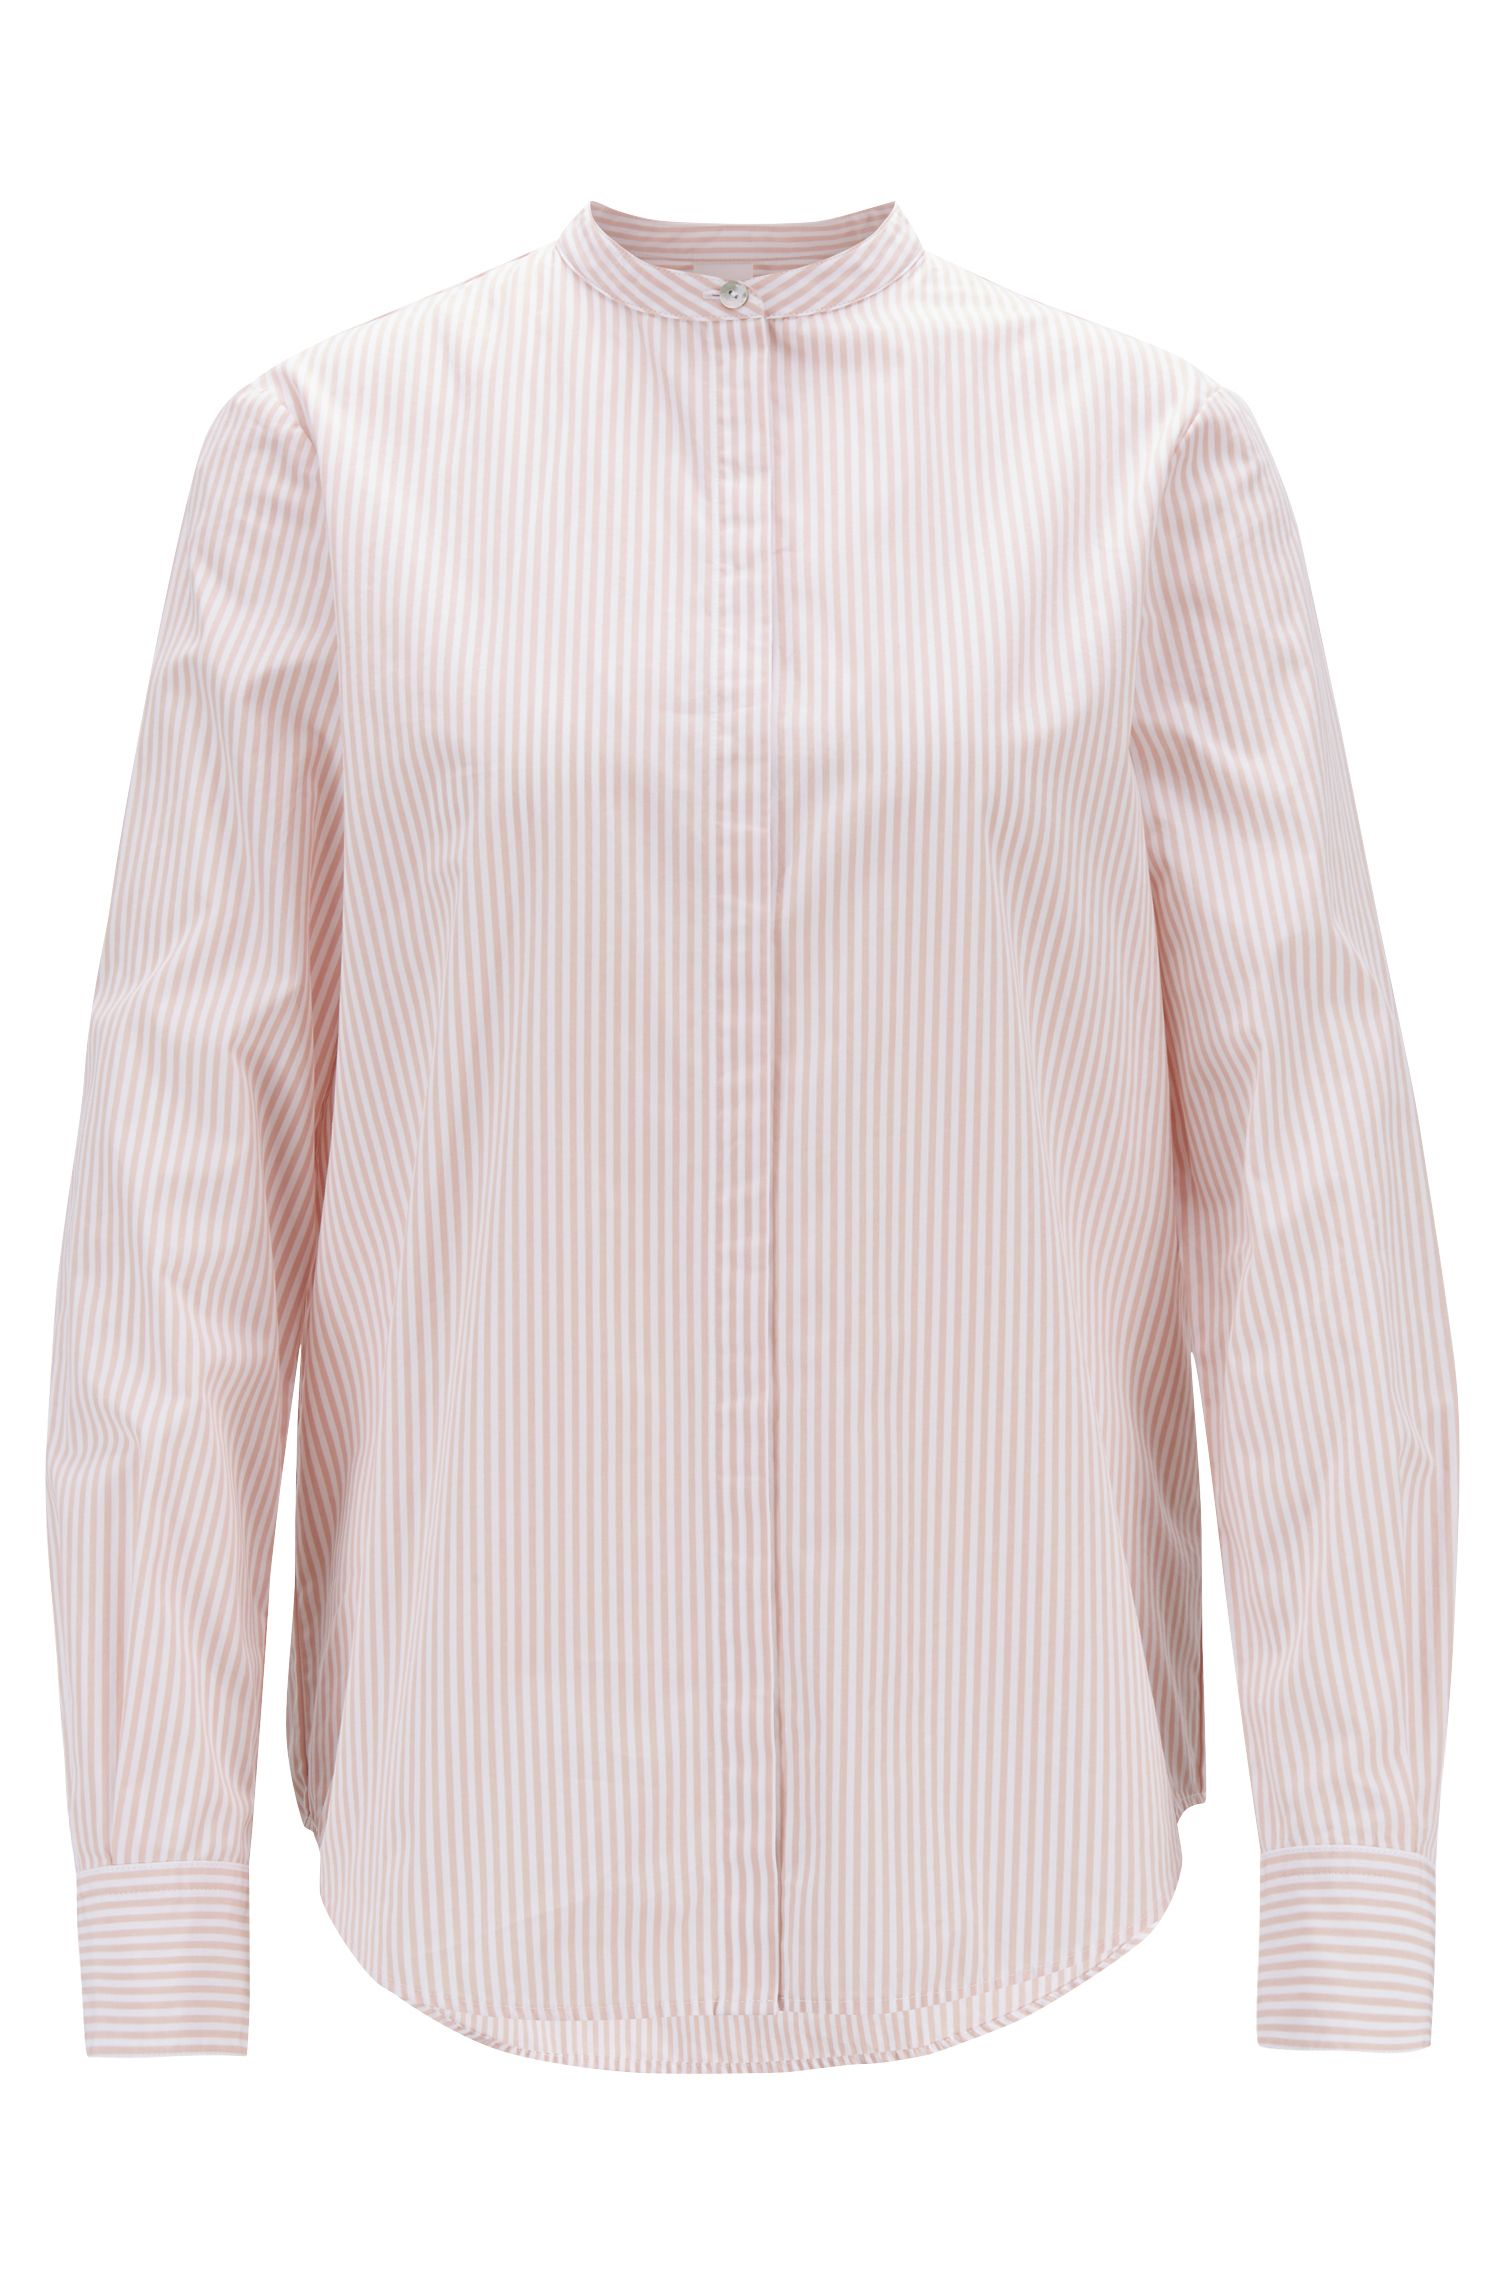 Hugo Boss - Relaxed-fit blouse in striped cotton with stand collar - 1